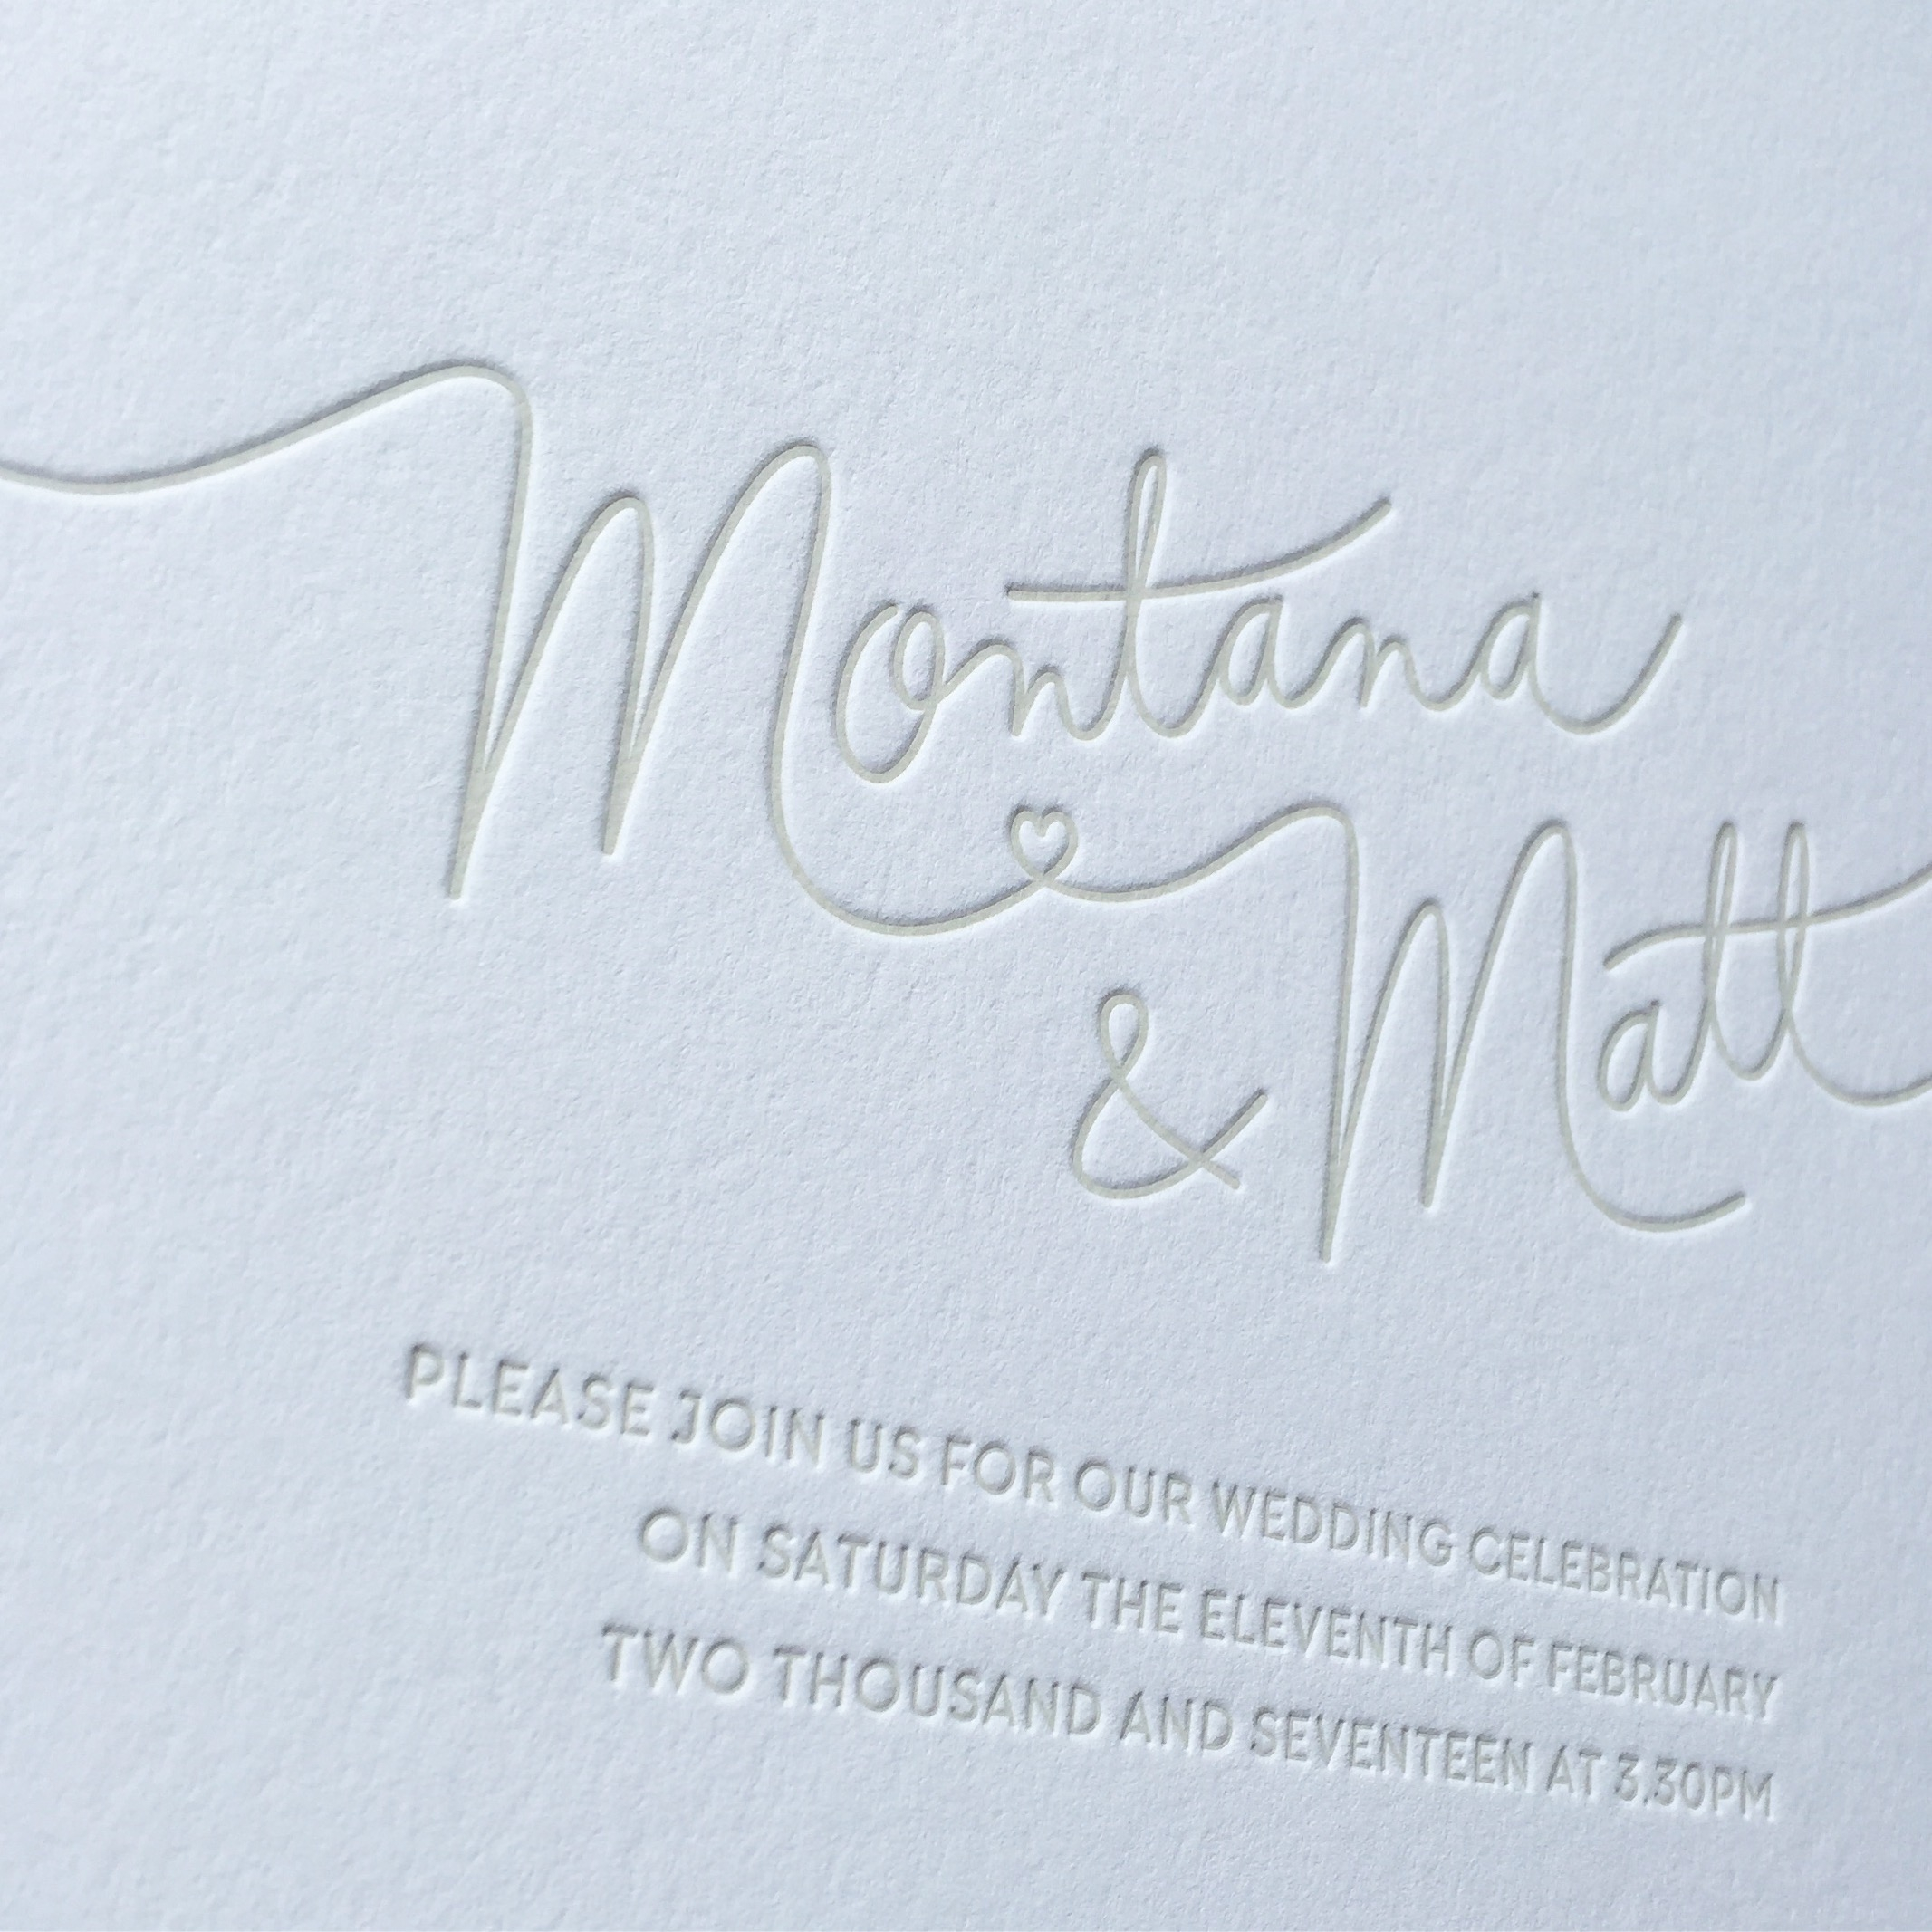 WTH_Wedding_MontanaMatt_01.jpg